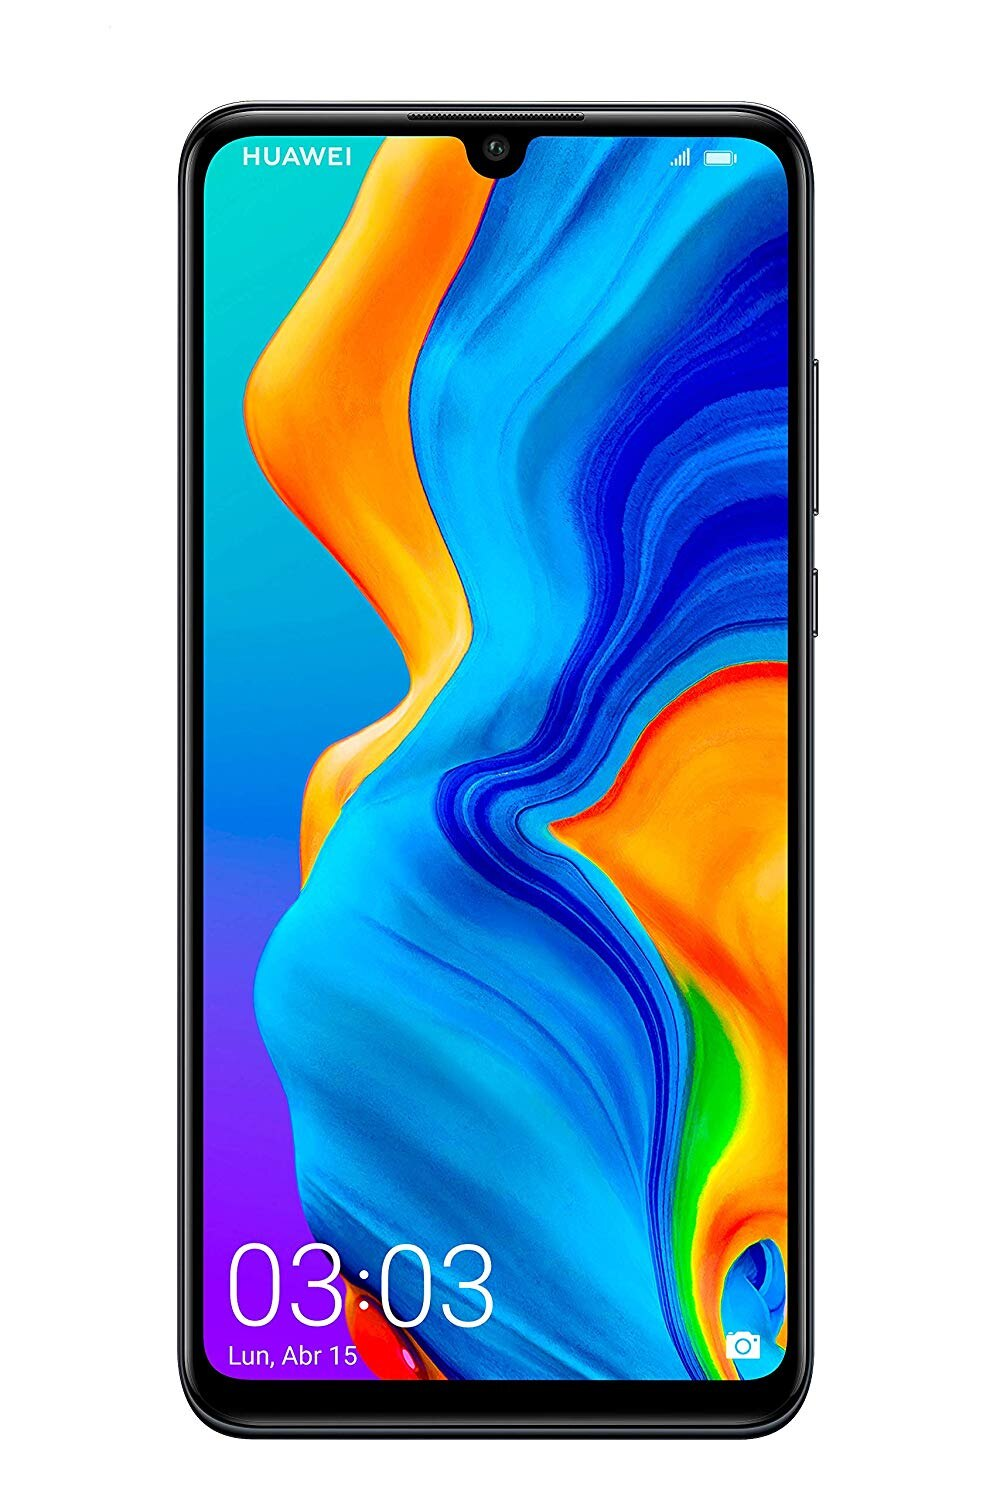 Huawei P30 Lite, Dual SIM - Global Mobile